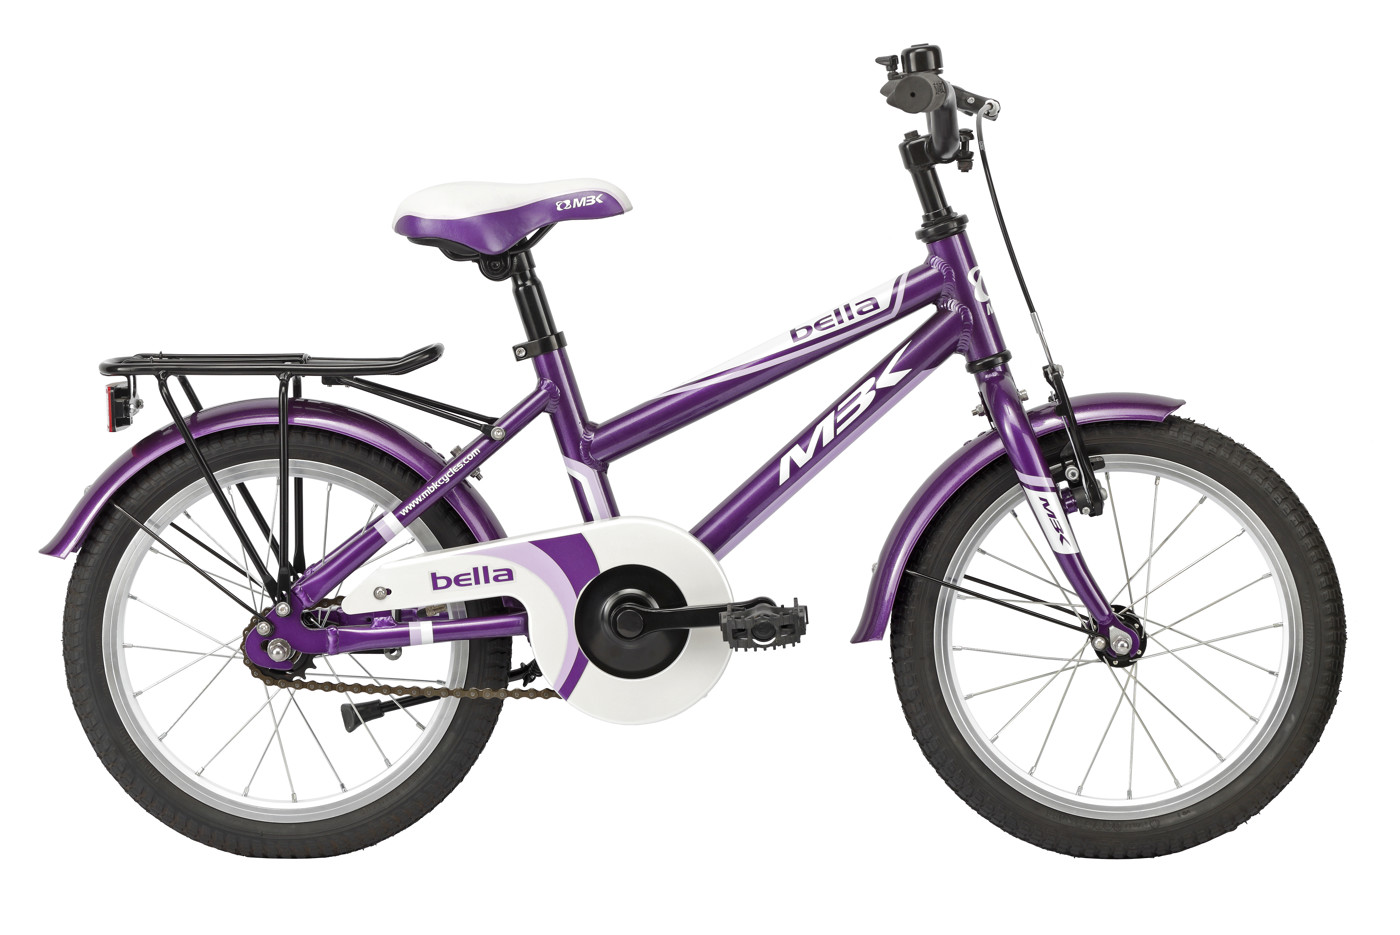 MBK Bella 16in Purple 2016 Street Citybike